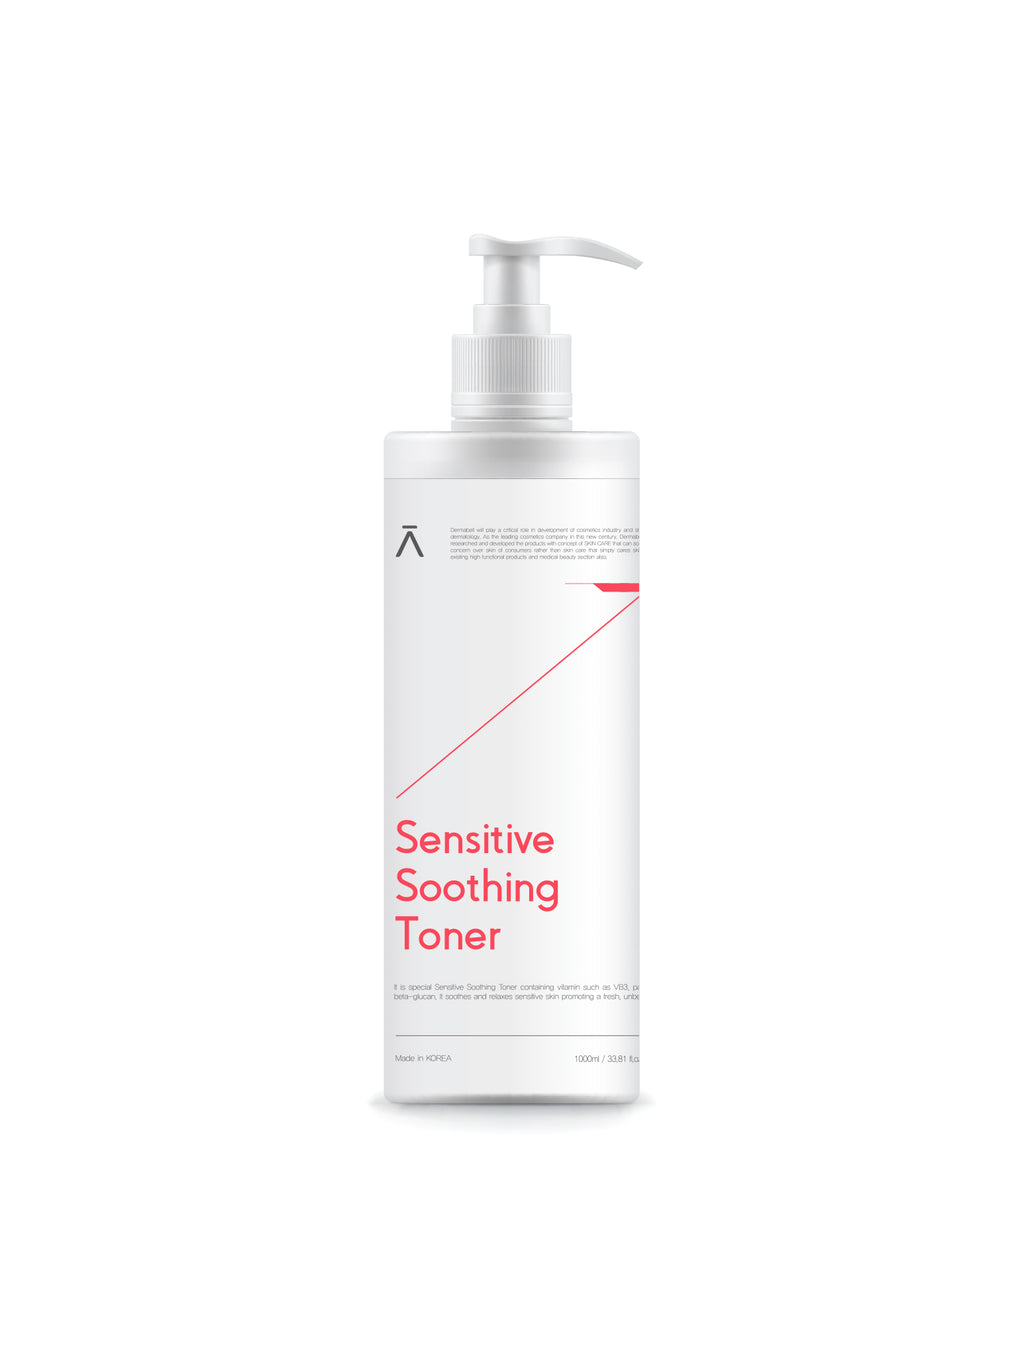 Sensitive Soothing Toner (Sensitive Toning Lotion) Toner by DERMABELL PRO